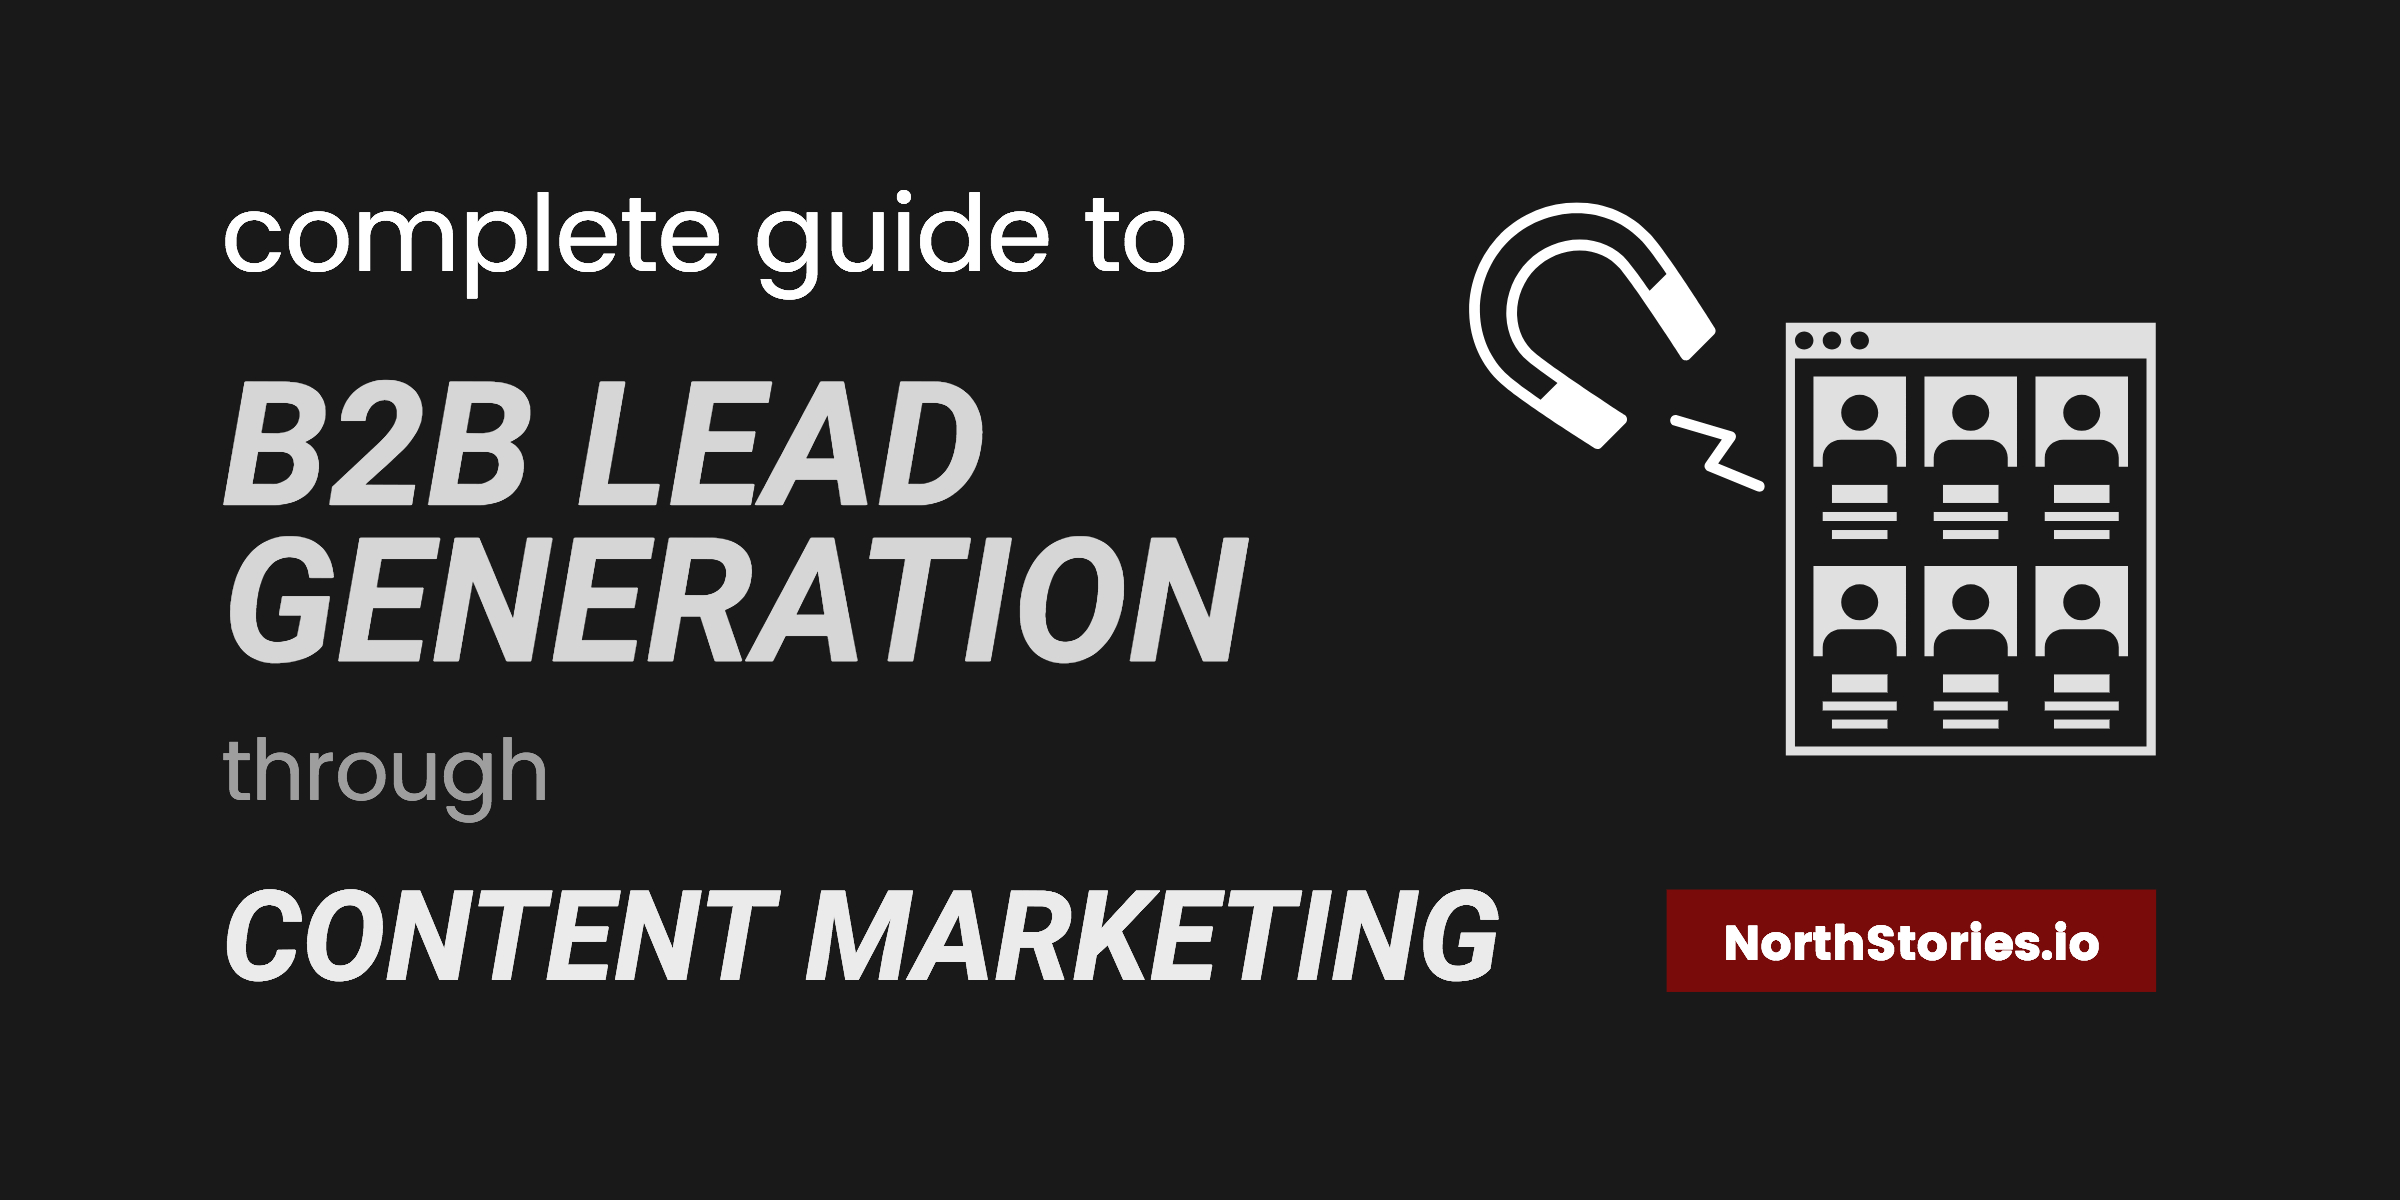 Complete Guide to B2B Lead Generation Through Content Marketing